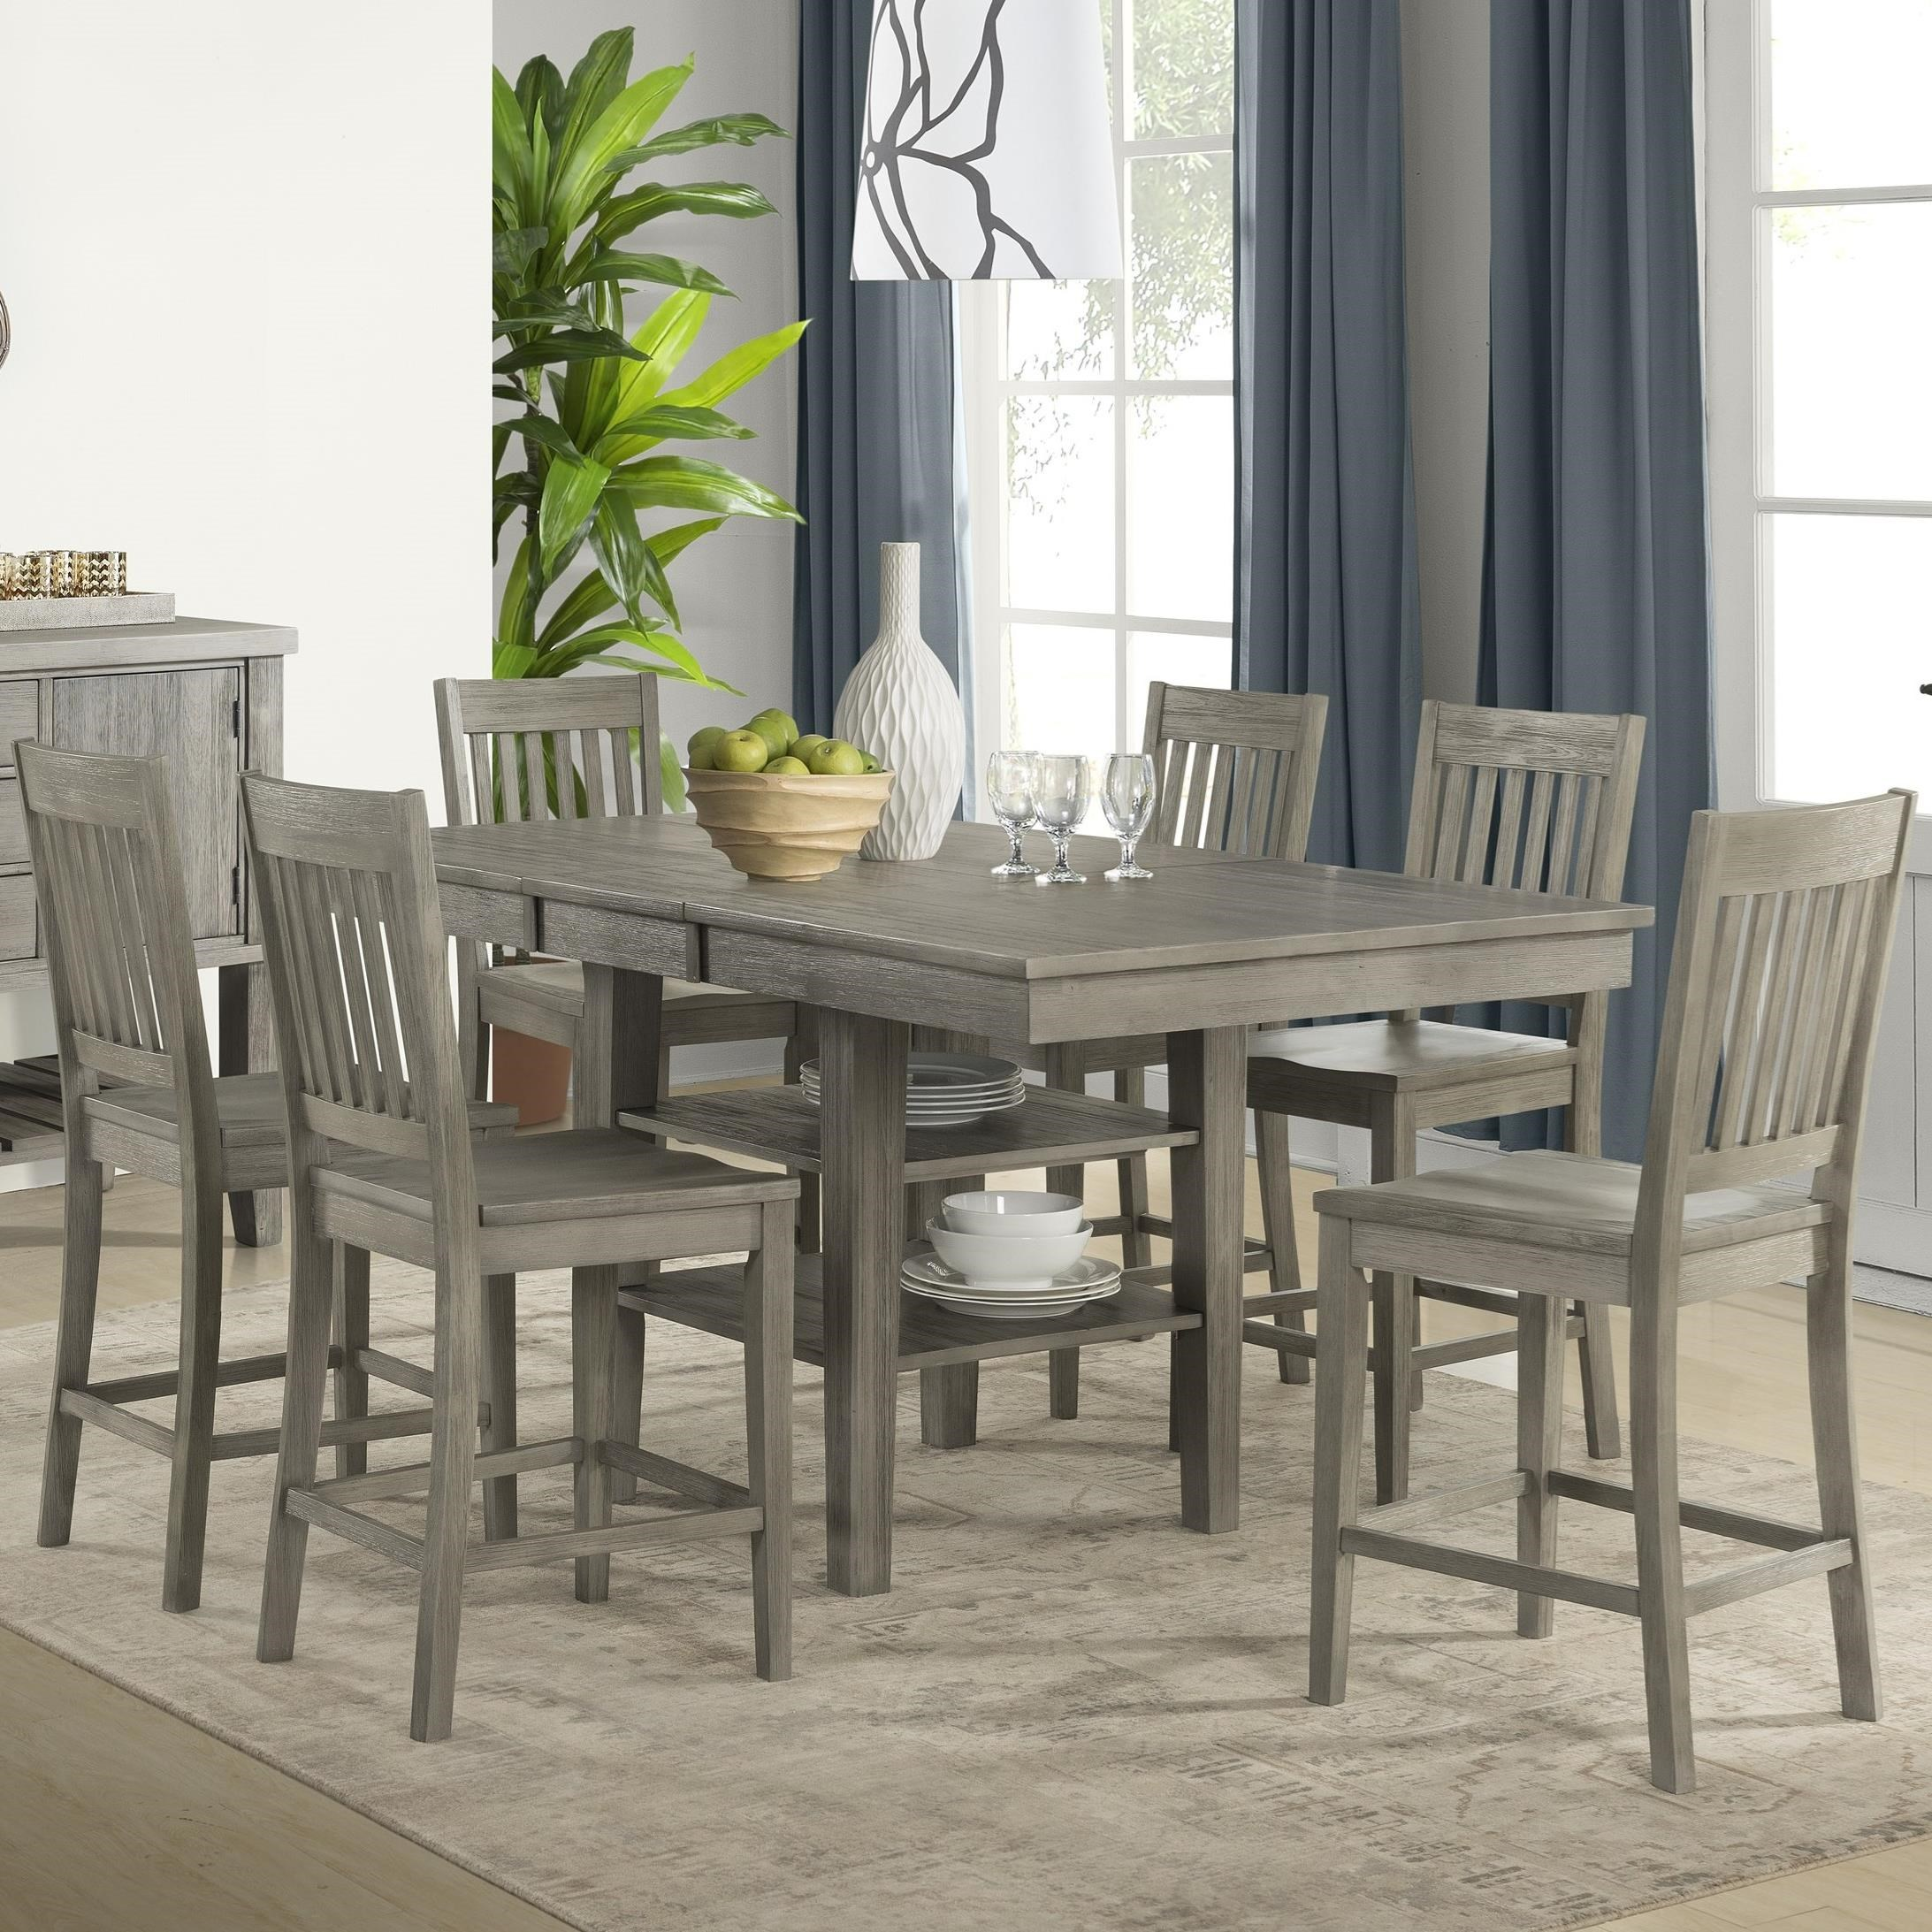 Huron Transitional Pub Table and Chair Set by AAmerica at Powell's Furniture and Mattress